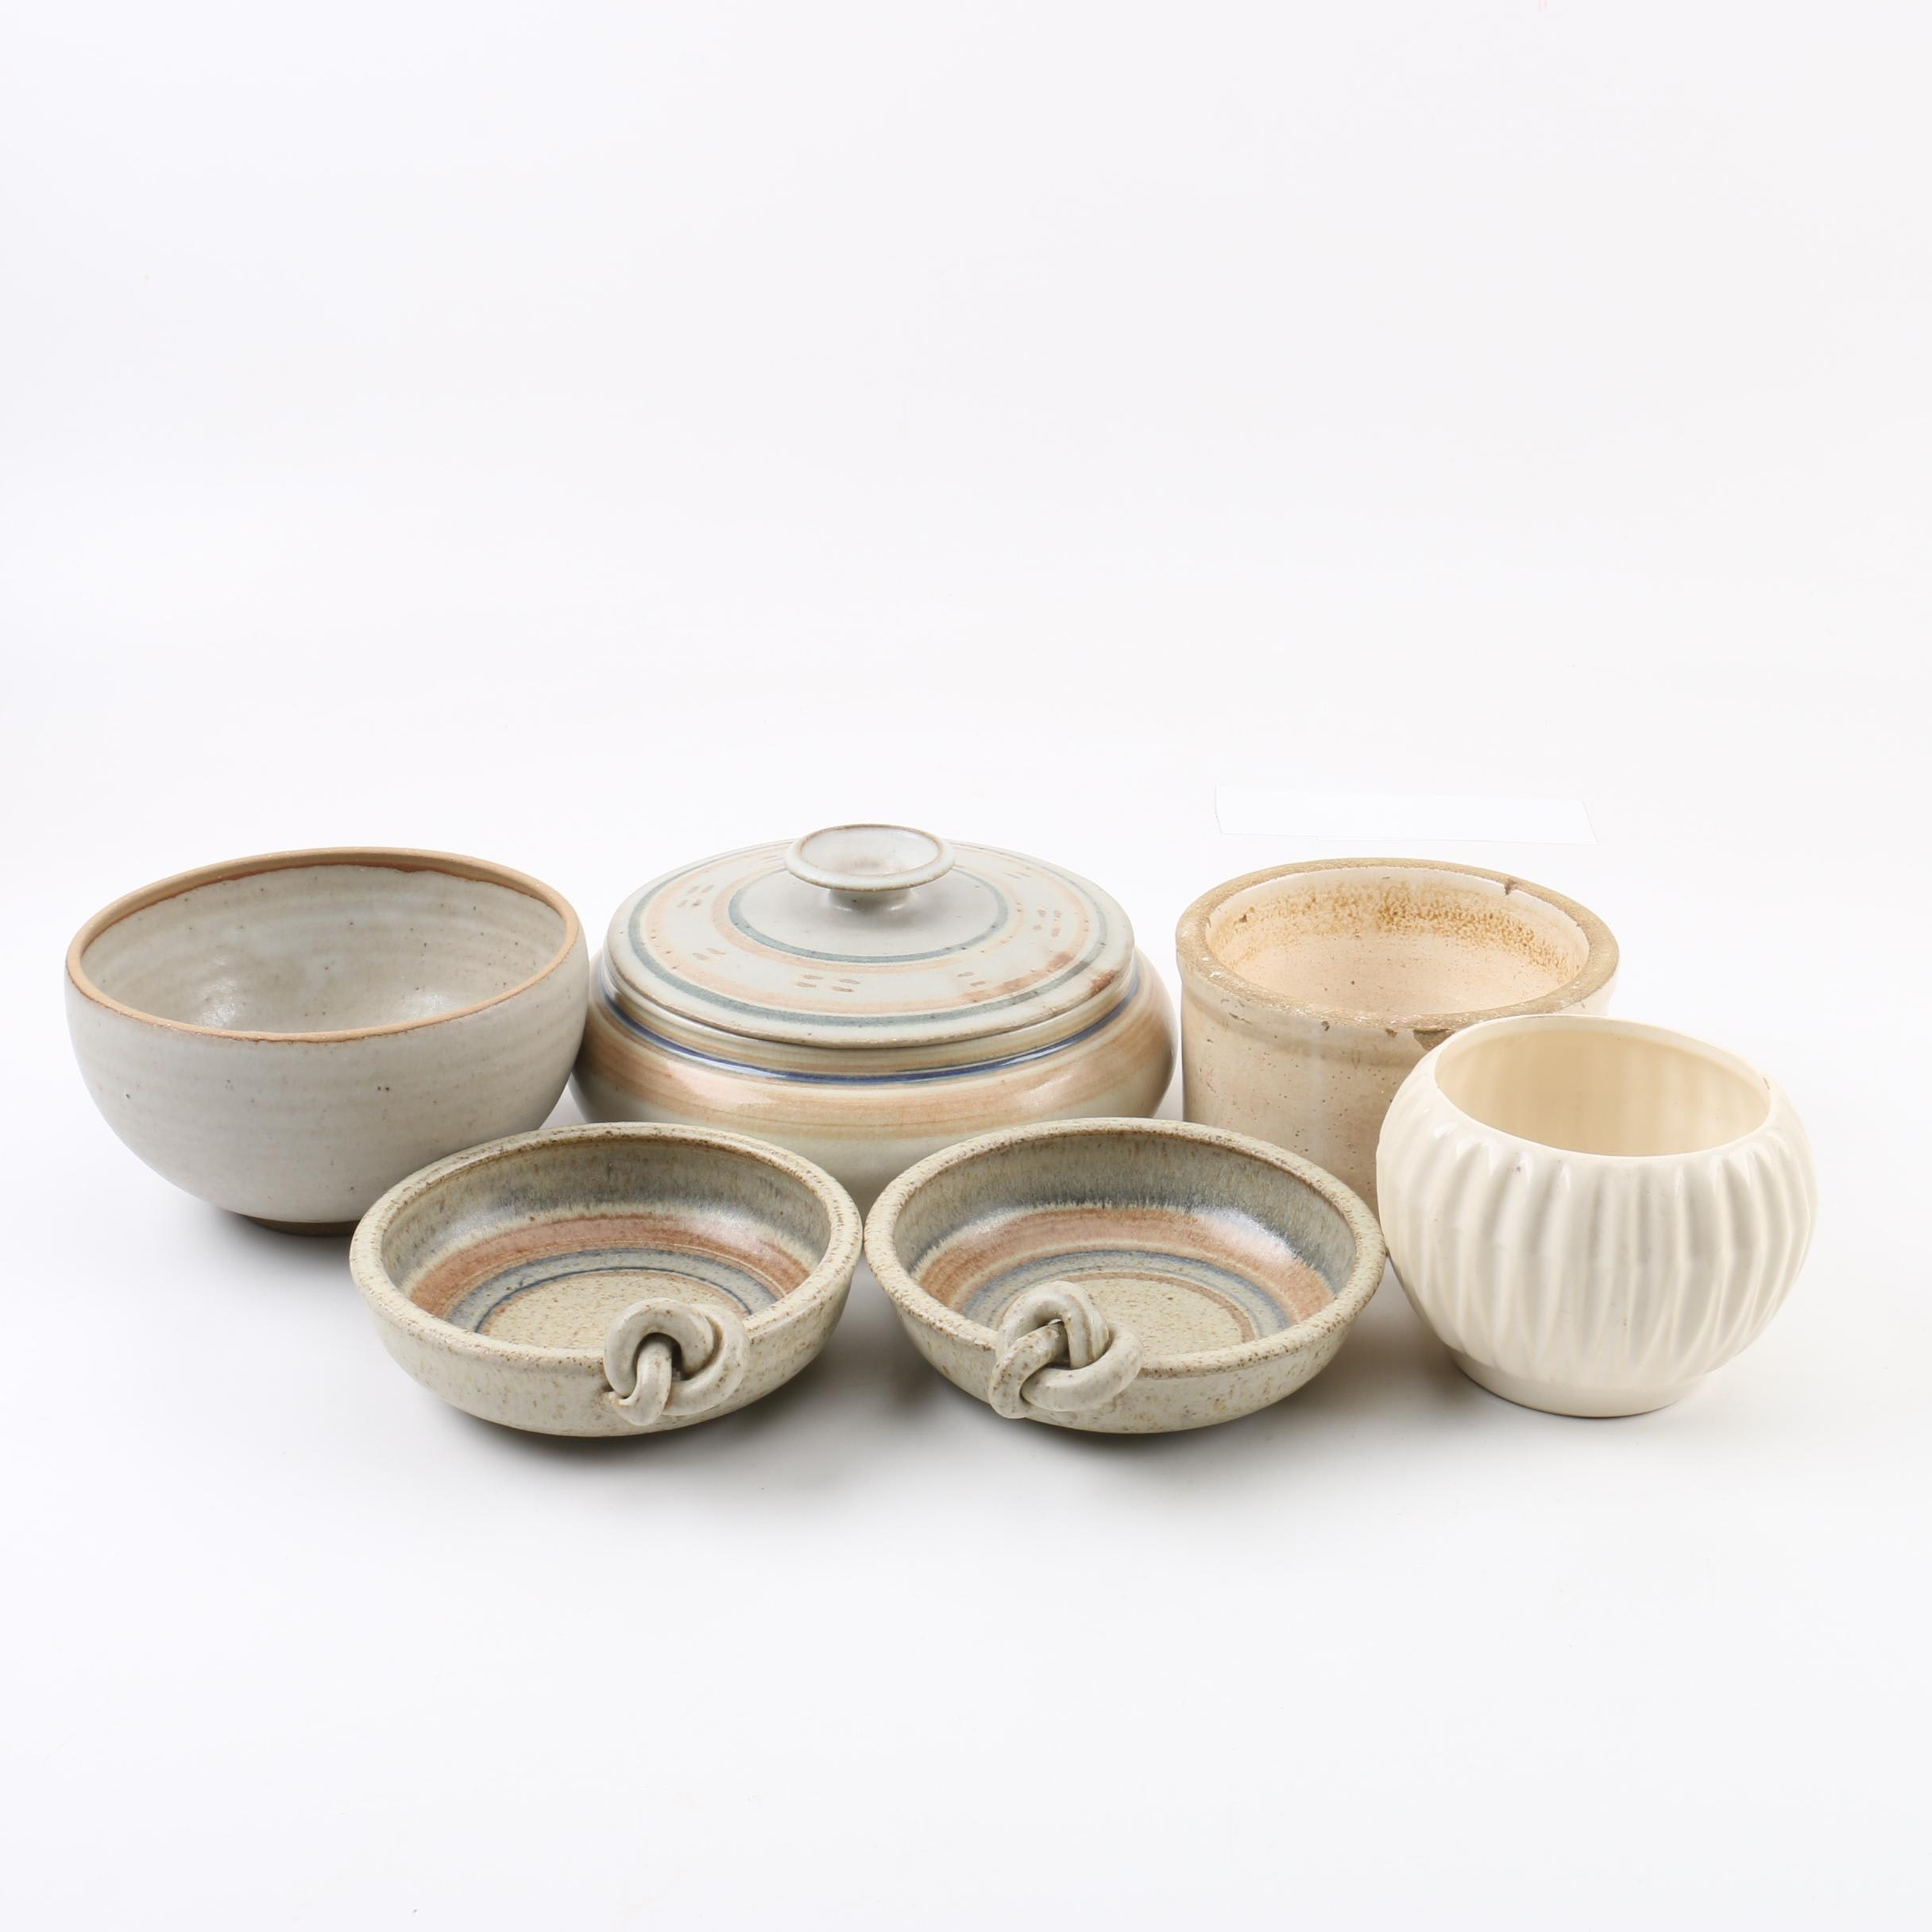 American Art Pottery Bowls and Vessels